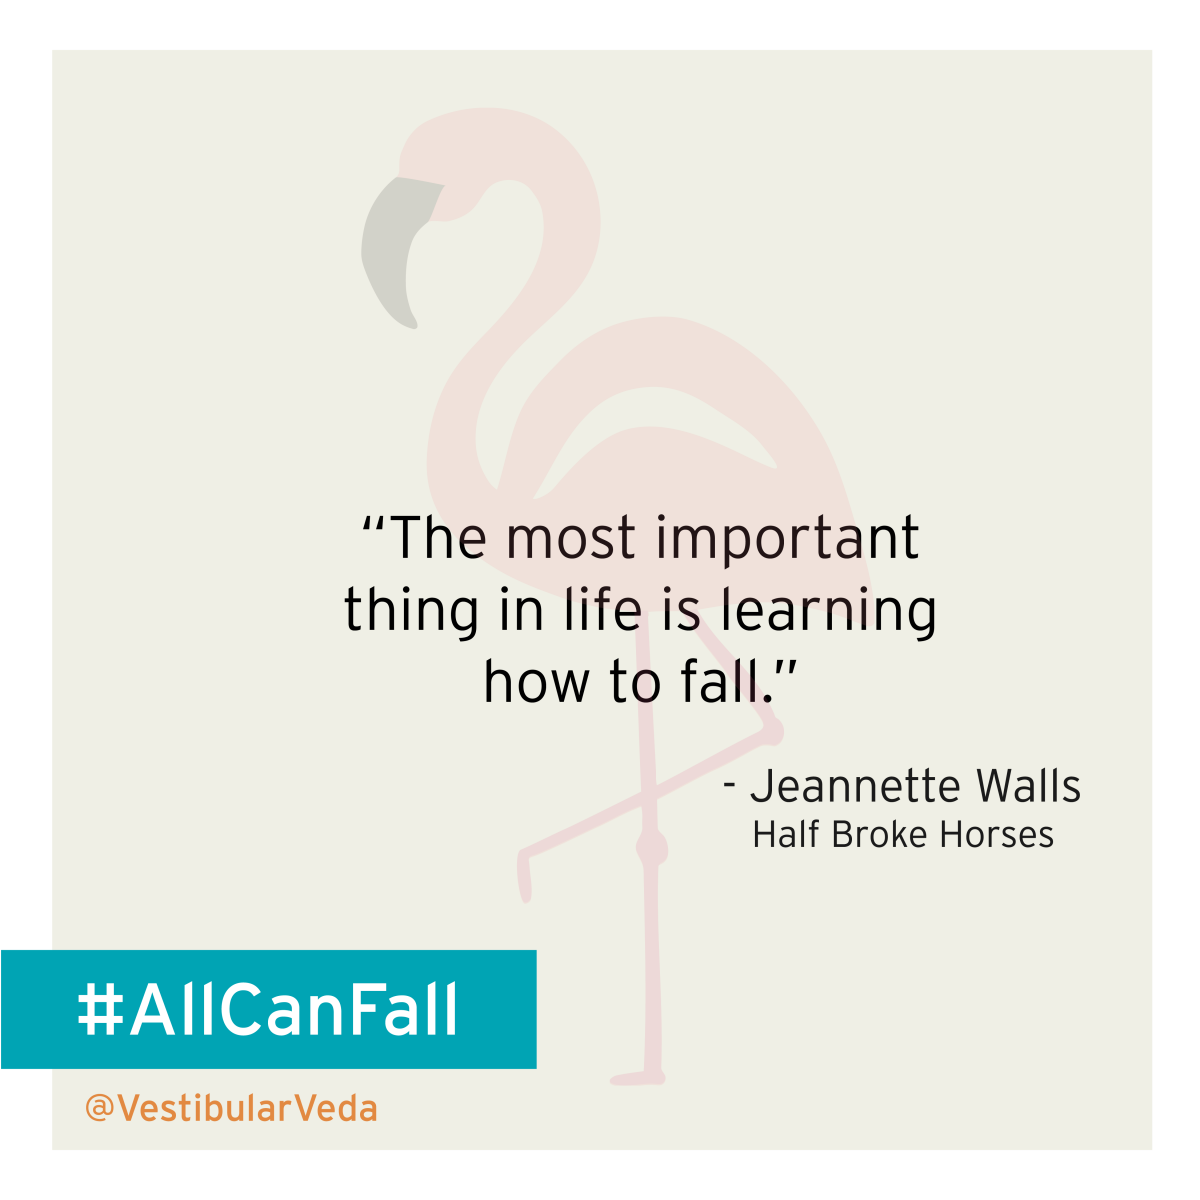 """The most important thing in life is learning how to fall.""  ― Jeannette Walls, Half Broke Horses"